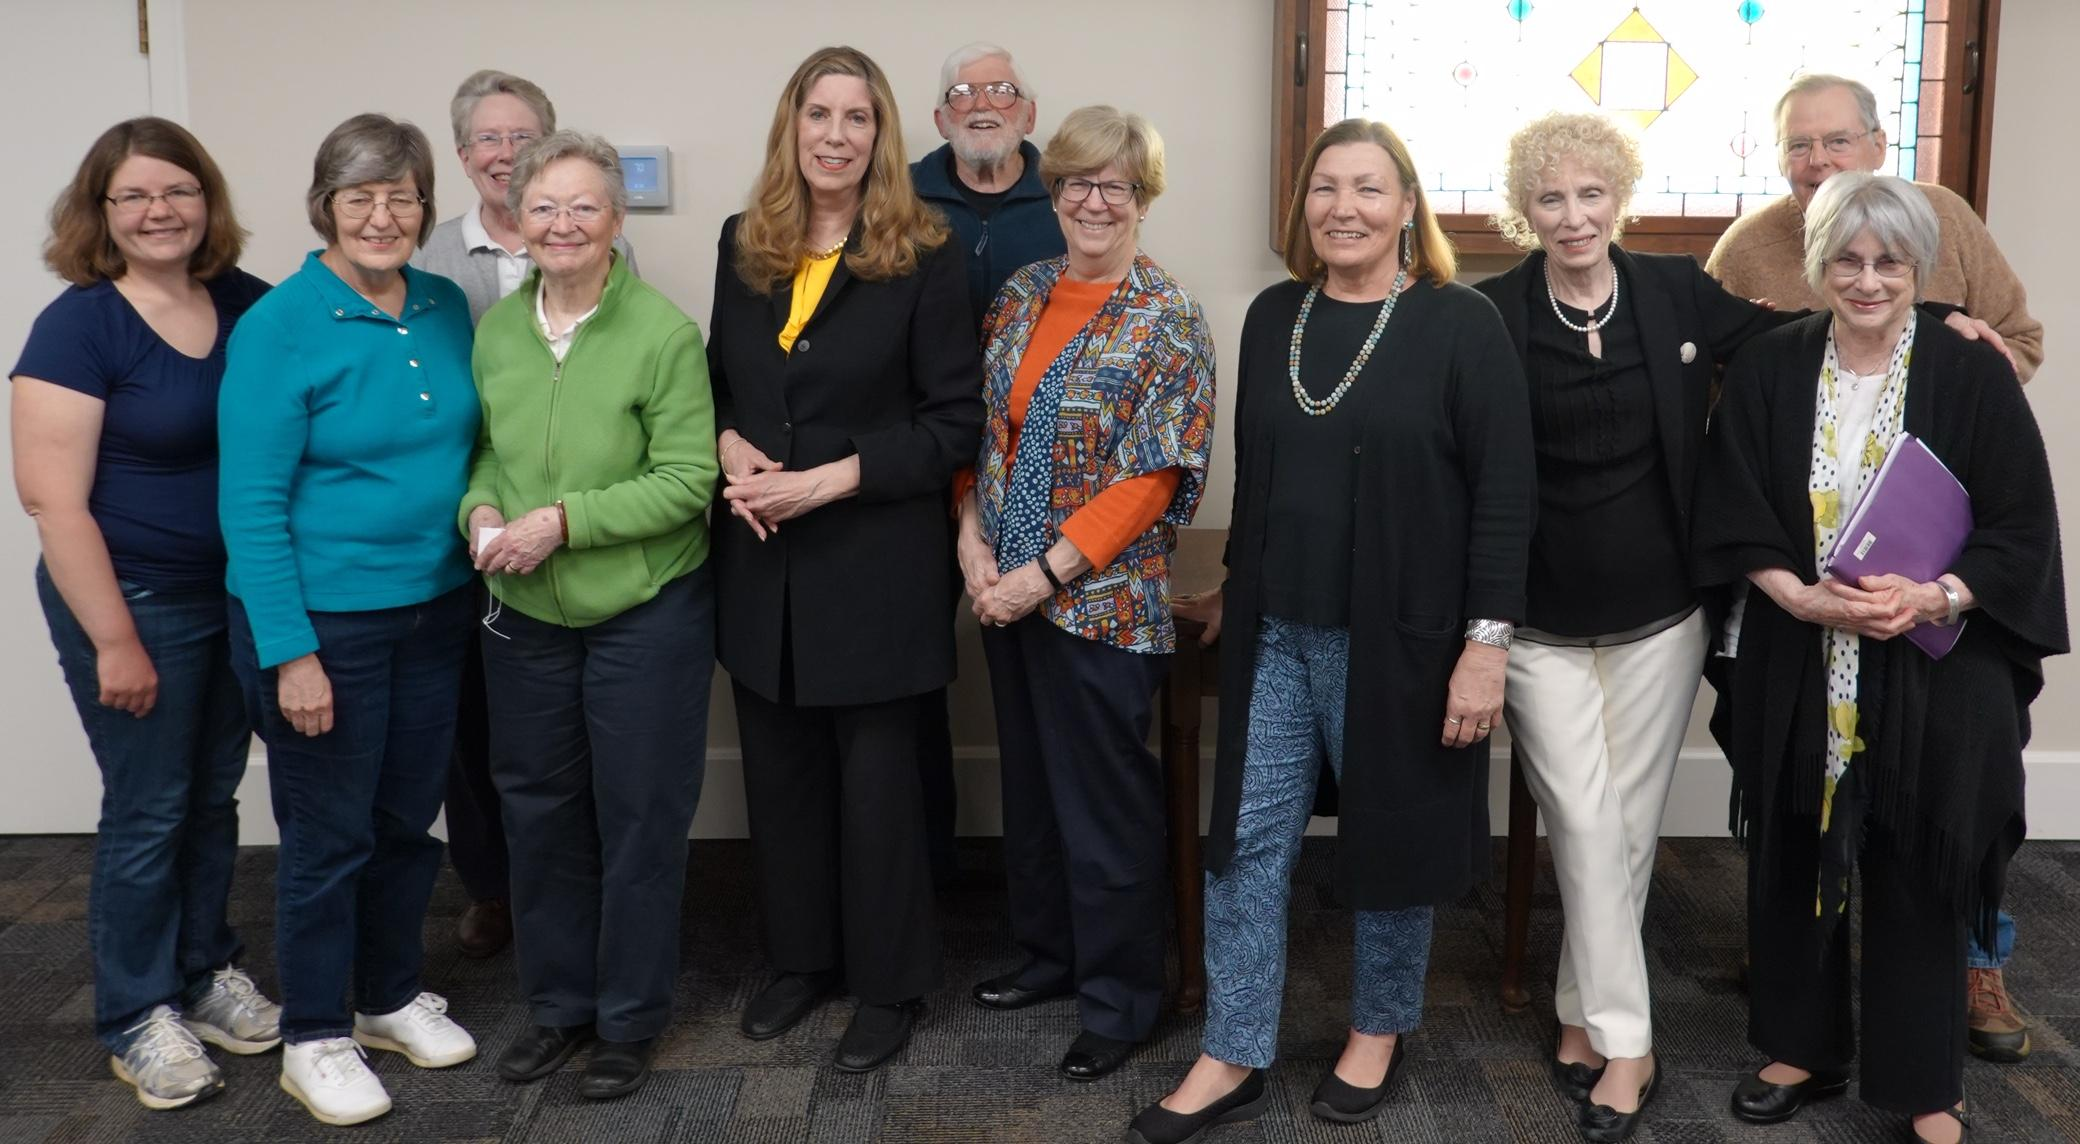 2019-2020 LWV Oxford (OH) Officers